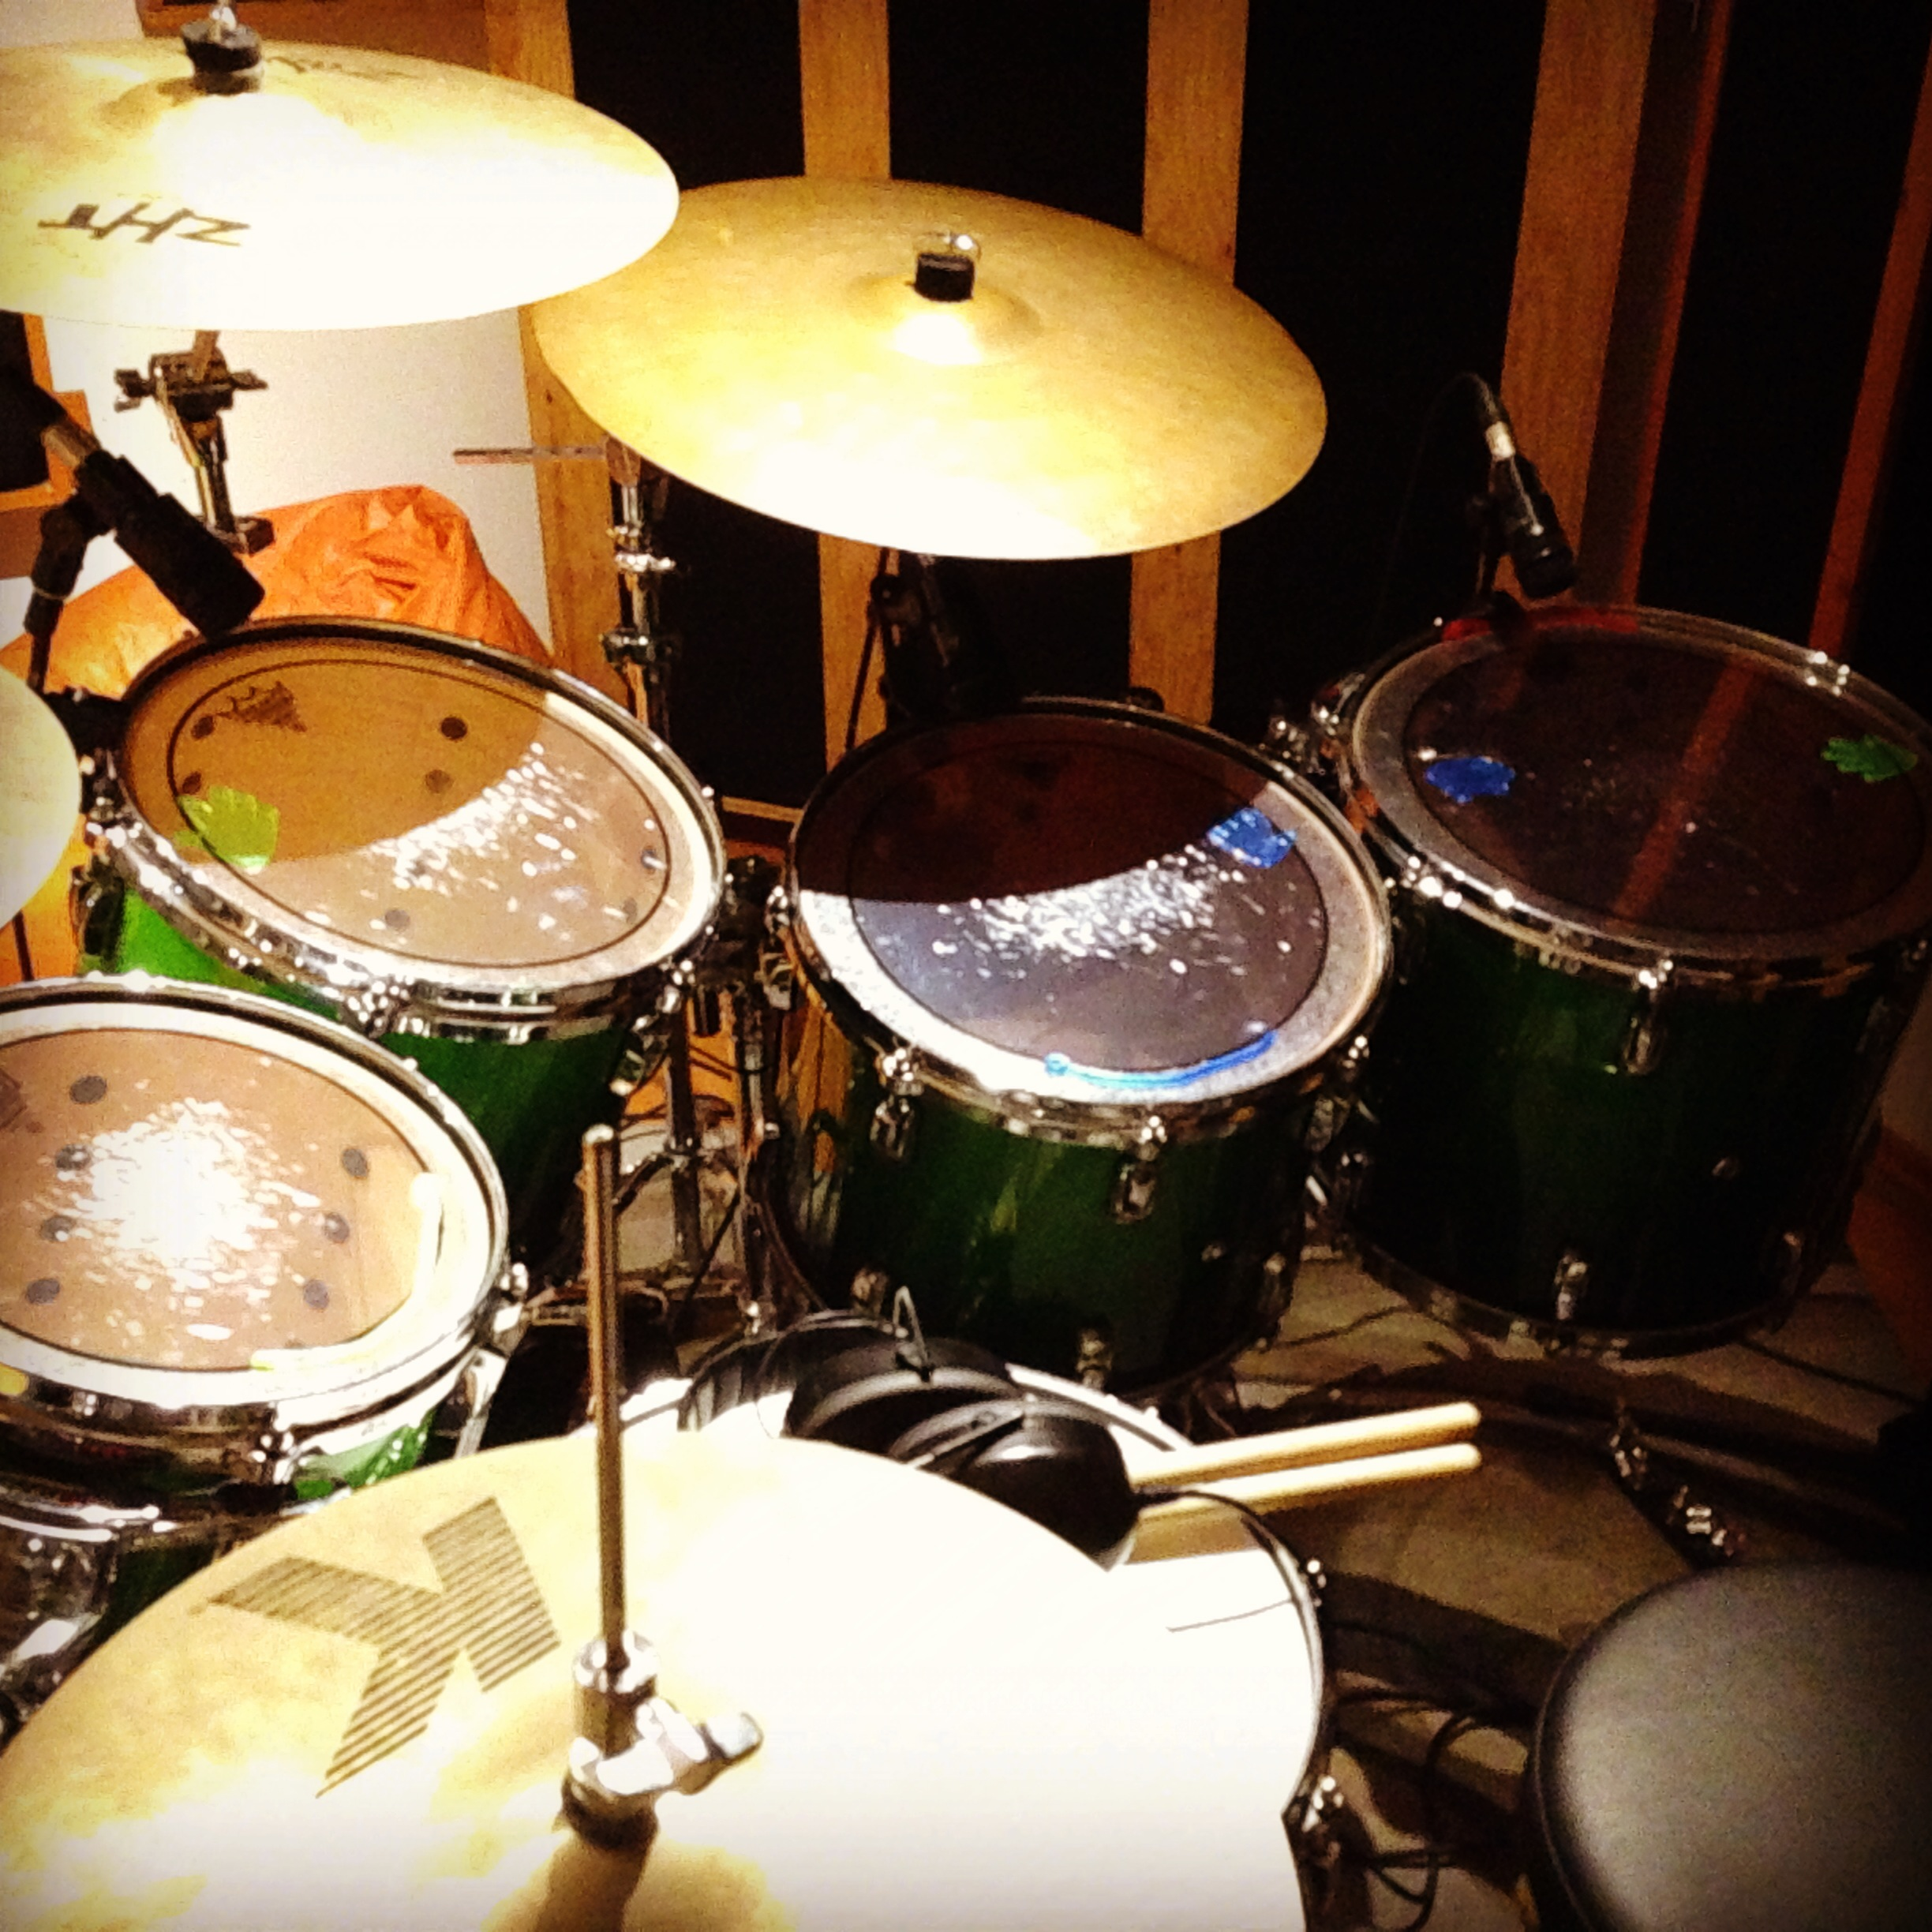 recording drums with sticky hands